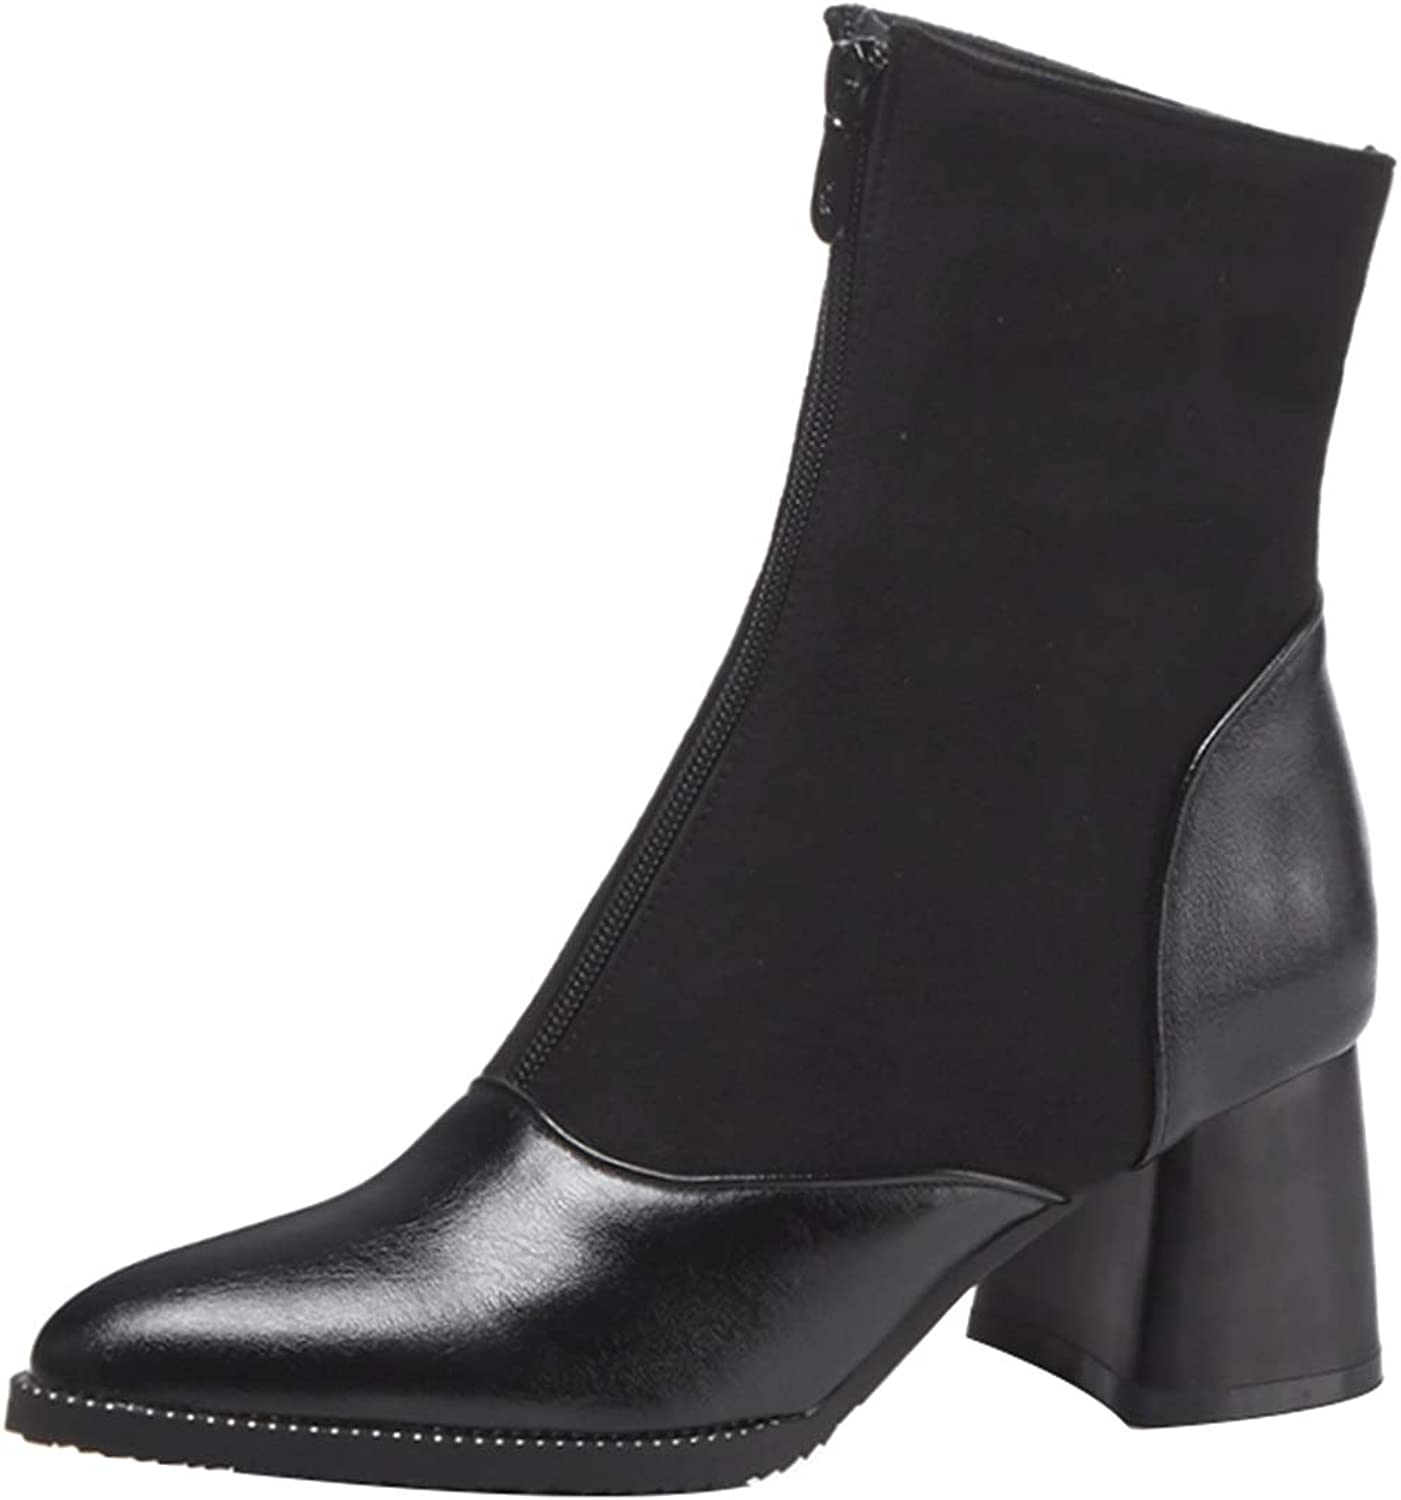 Jushee Womens Juguess 6 cm mid-Heel Ankle Zipper Patent-Leather Boots